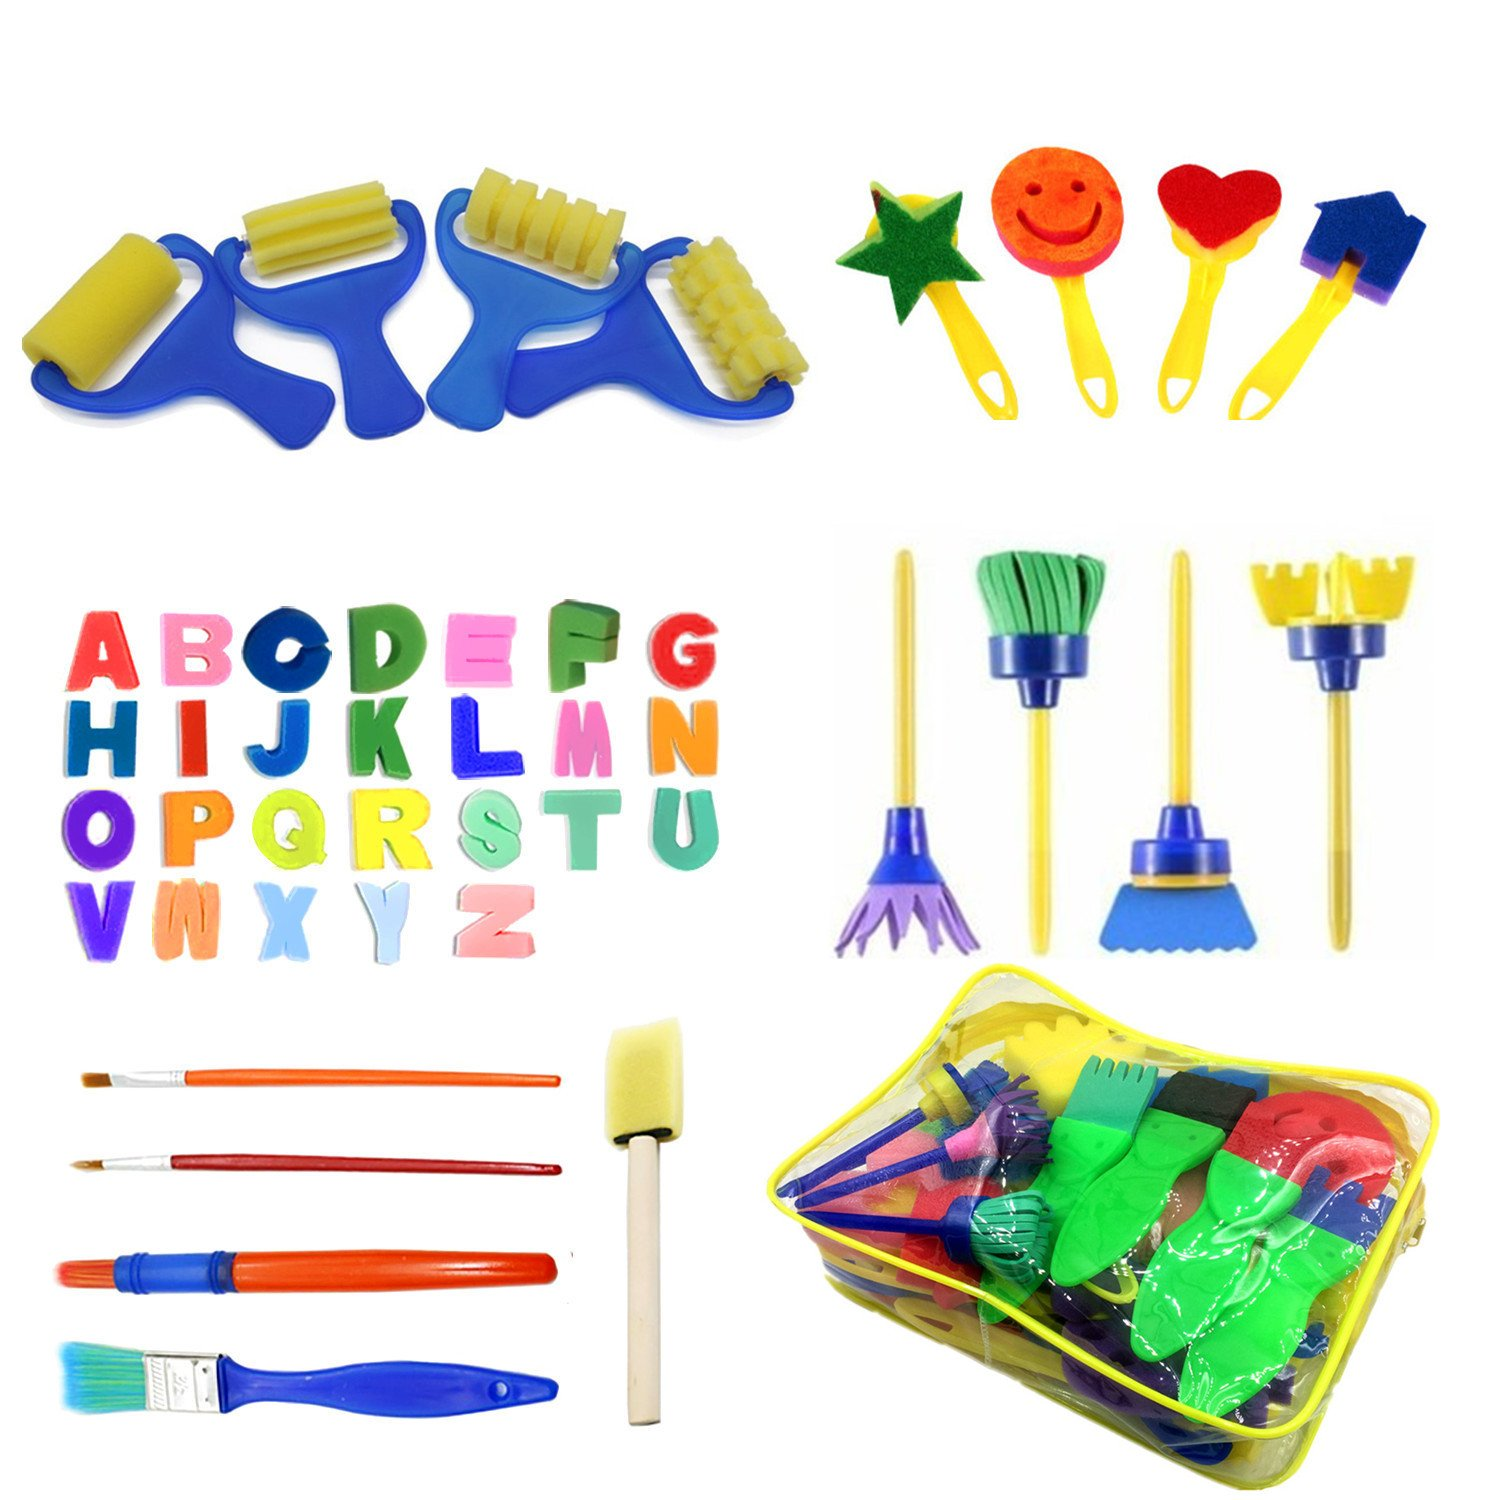 48pcs Kids Art & Craft Early Learning Painting Sponges Stamper Mini Paint Brushes Kit with 26 English Alphabets Drawing Tools (with Box) Lumsbright